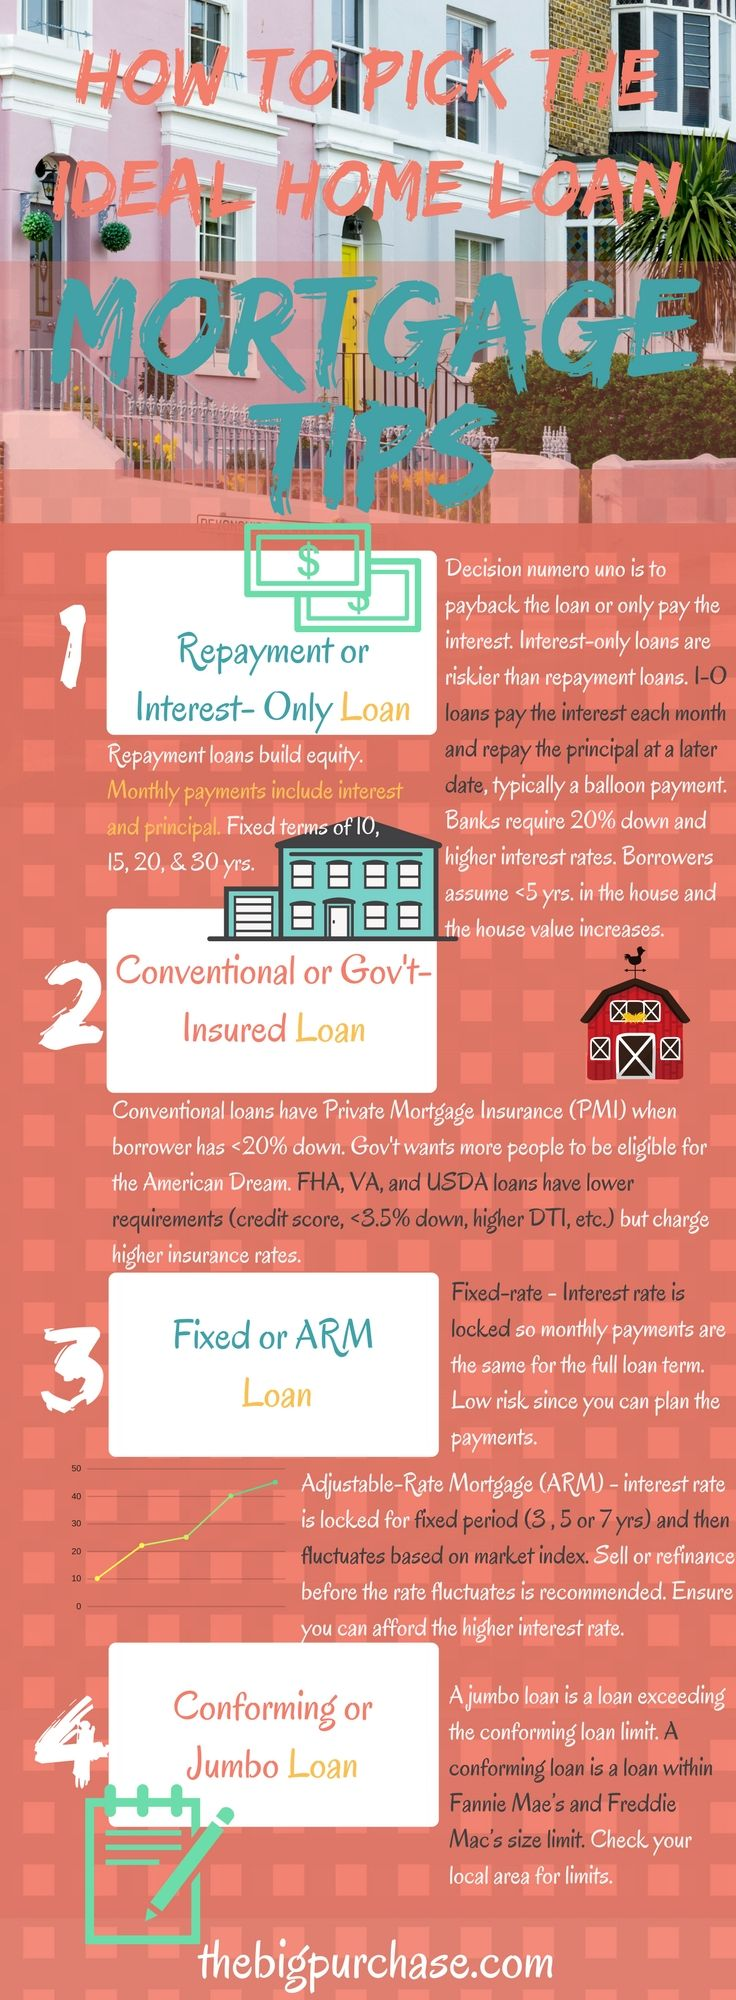 best 25+ arm mortgage ideas only on pinterest | mortgage tips